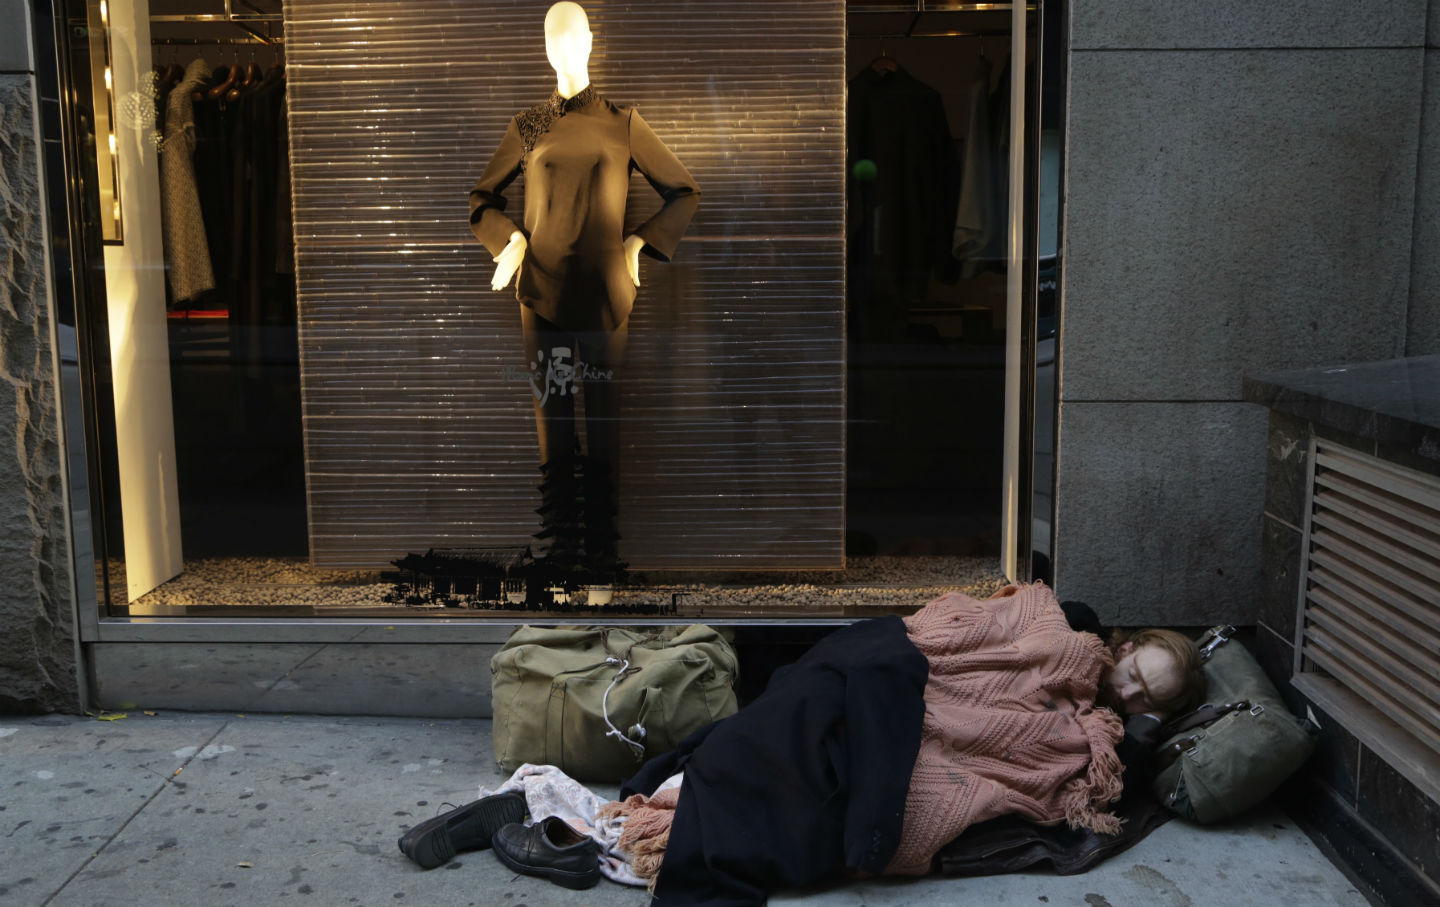 Homeless-person-in-New-York-City